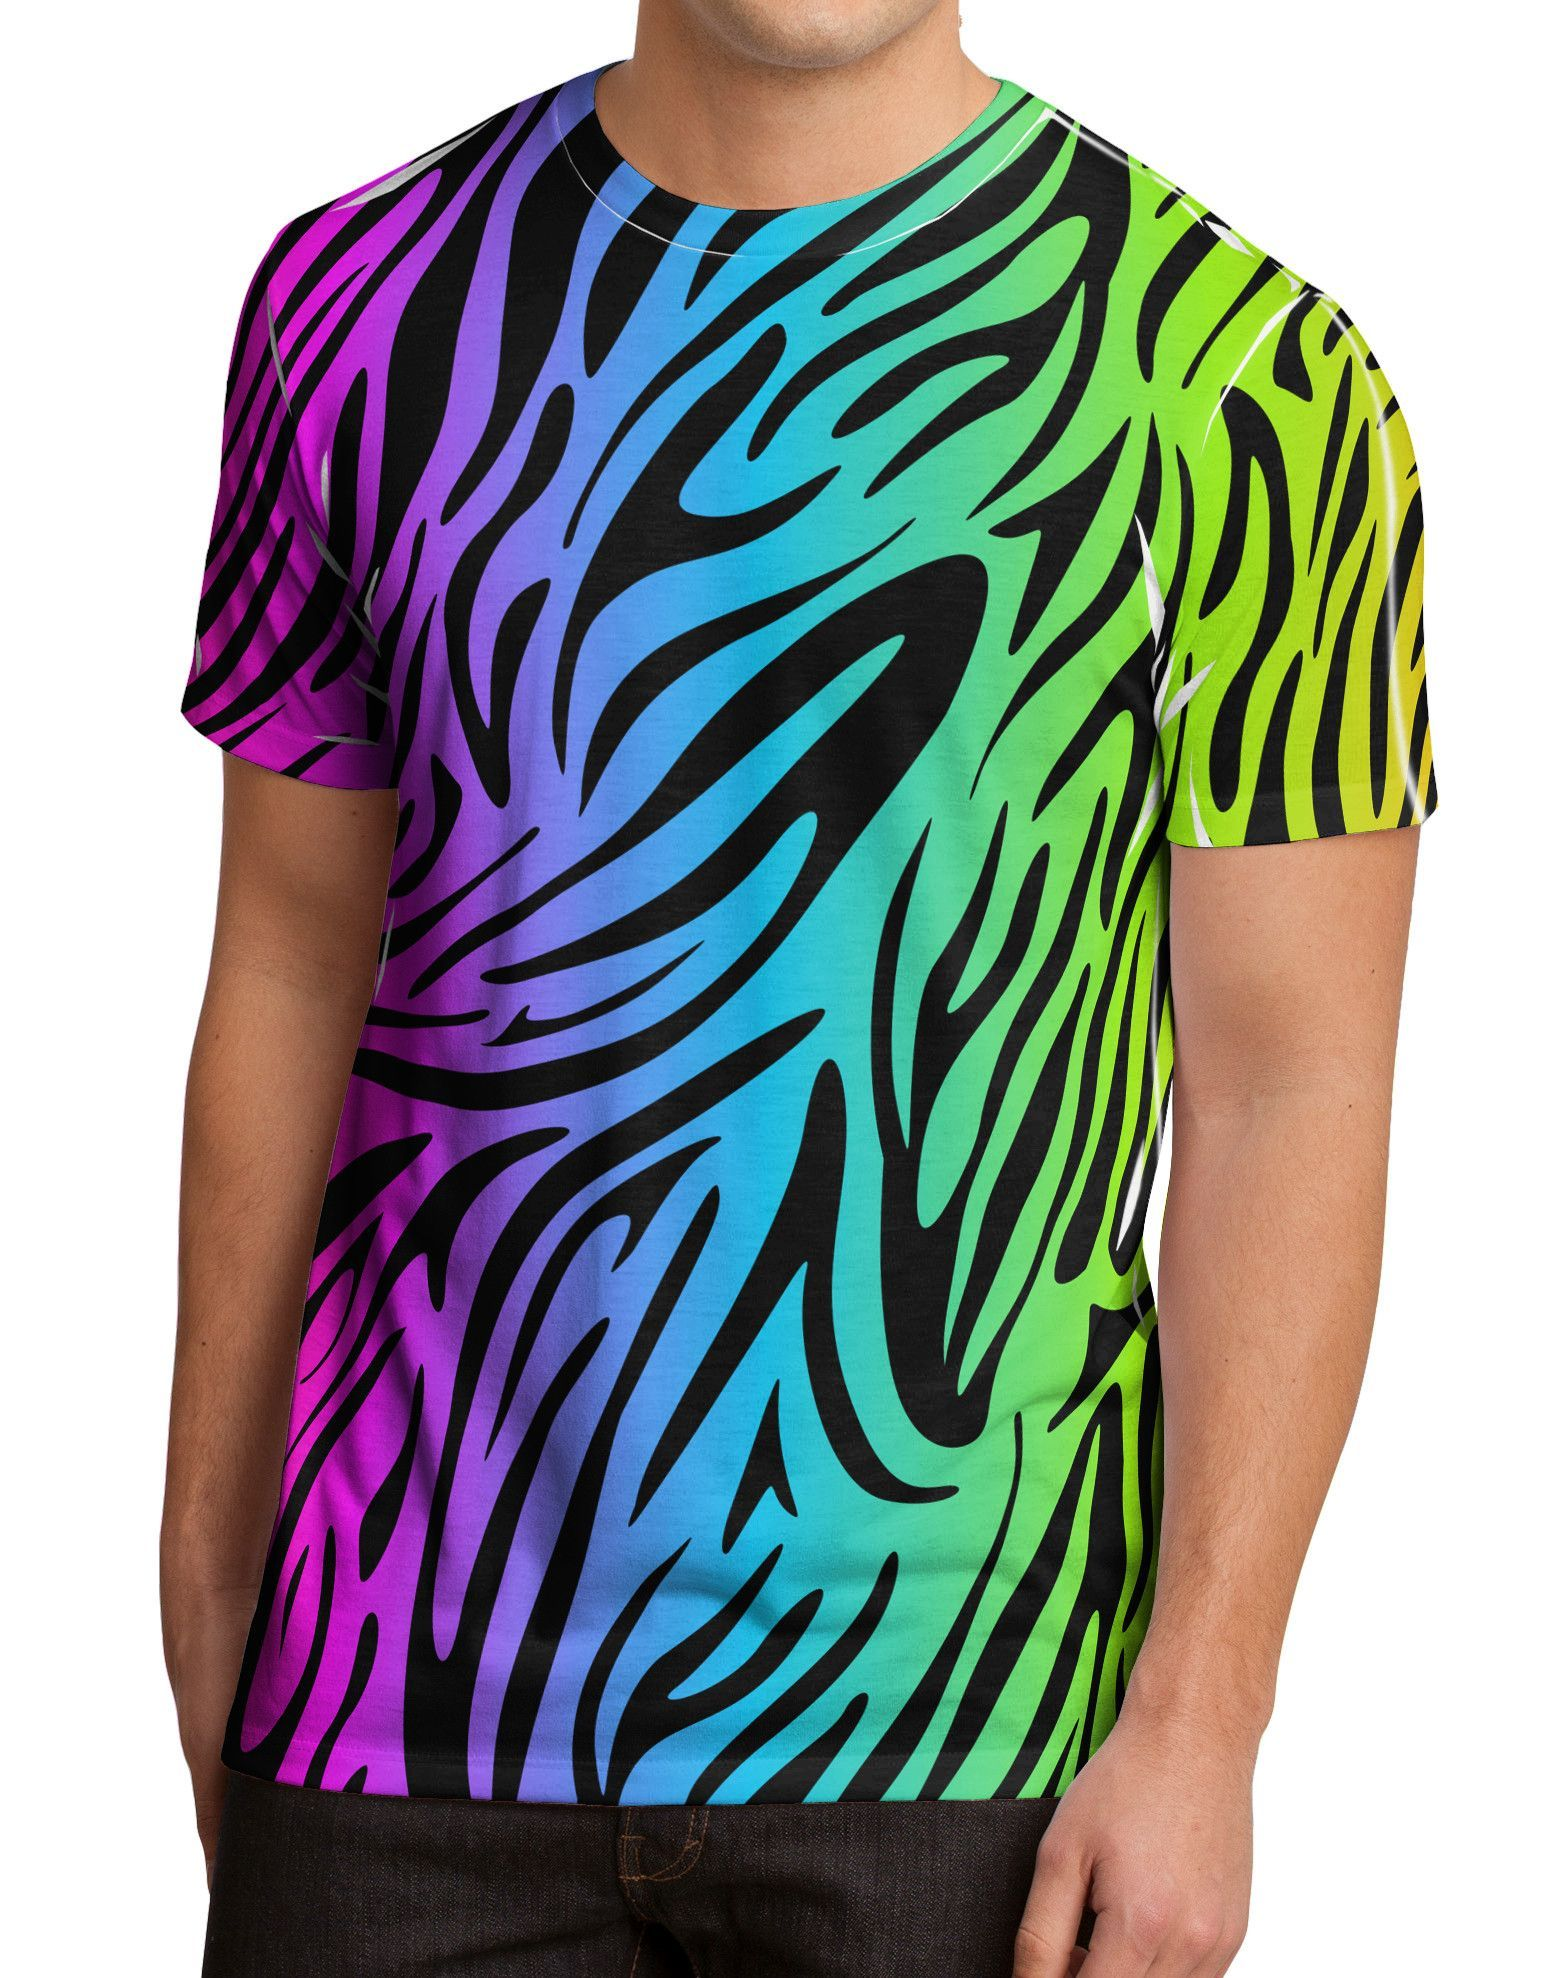 75046e4cf3c9c TooLoud Rainbow Zebra Print Men s Sub Tee Dual Sided All Over Print ...